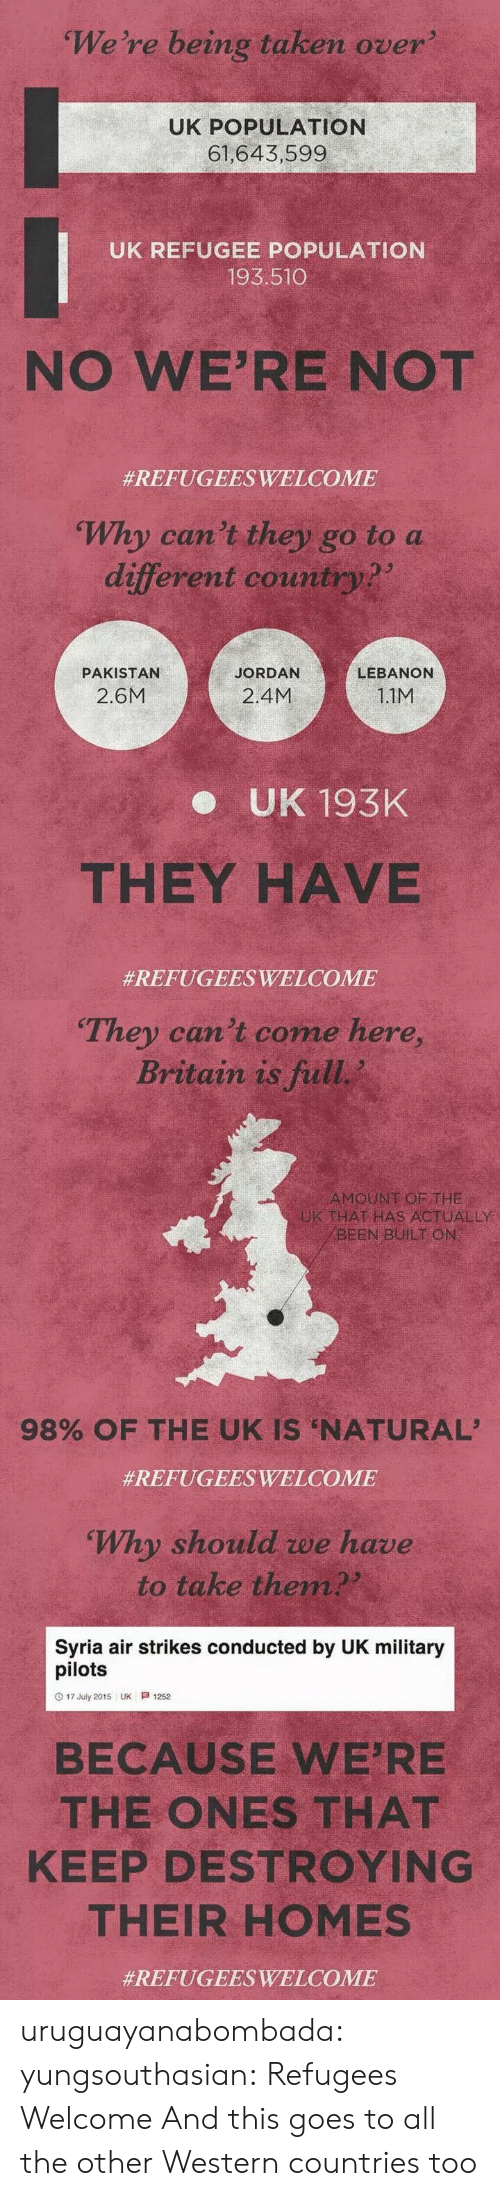 Pilots: We're being taken over  UK POPULATION  61,643,599  UK REFUGEE POPULATION  193.510  NO WE'RE NOT  #REFUGEESWELCOME   Why can't they go to a  different country?  PAKISTAN  JORDAN  LEBANON  2.6M  2.4M  1.1M  e UK 193K  THEY HAVE  #REFUGEESWELCOME   They can't come here,  Britain is full  AMOUNT OF THE  THAT HAS ACTUALLY  BEENBUİLT ON  98% OF THE UK IS 'NATURAL,  #REFUGEESWELCOME   Why should we have  to take them  Syria air strikes conducted by UK military  pilots  O 17 July 2015 UK 1252  BECAUSE WE'RE  THE ONES THAT  KEEP DESTROYING  THEIR HOMES  uruguayanabombada: yungsouthasian: Refugees Welcome  And this goes to all the other Western countries too